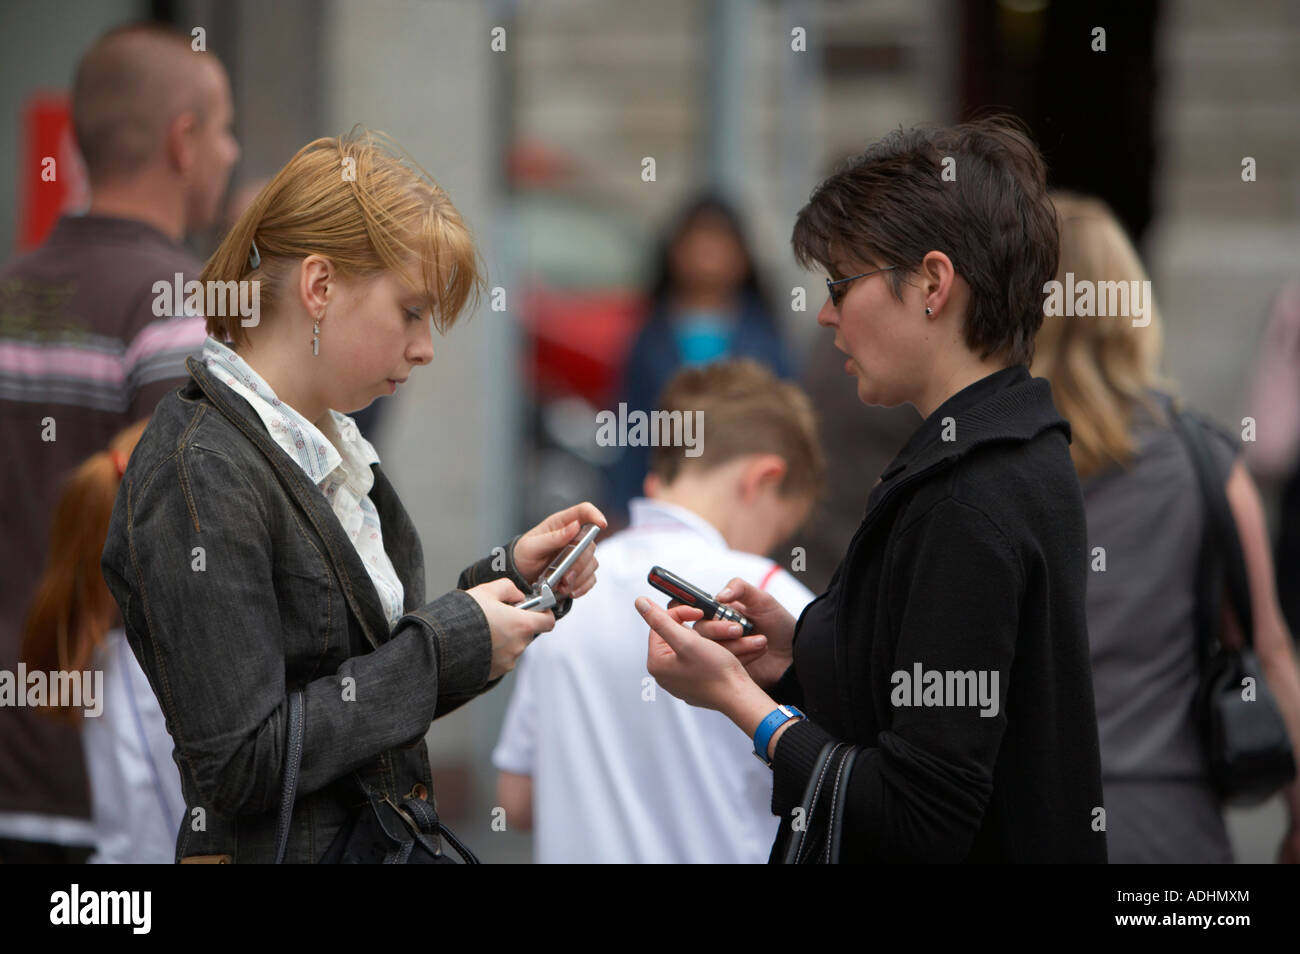 two women exchange phone numbers from mobile phones on crowded street in central dublin - Stock Image